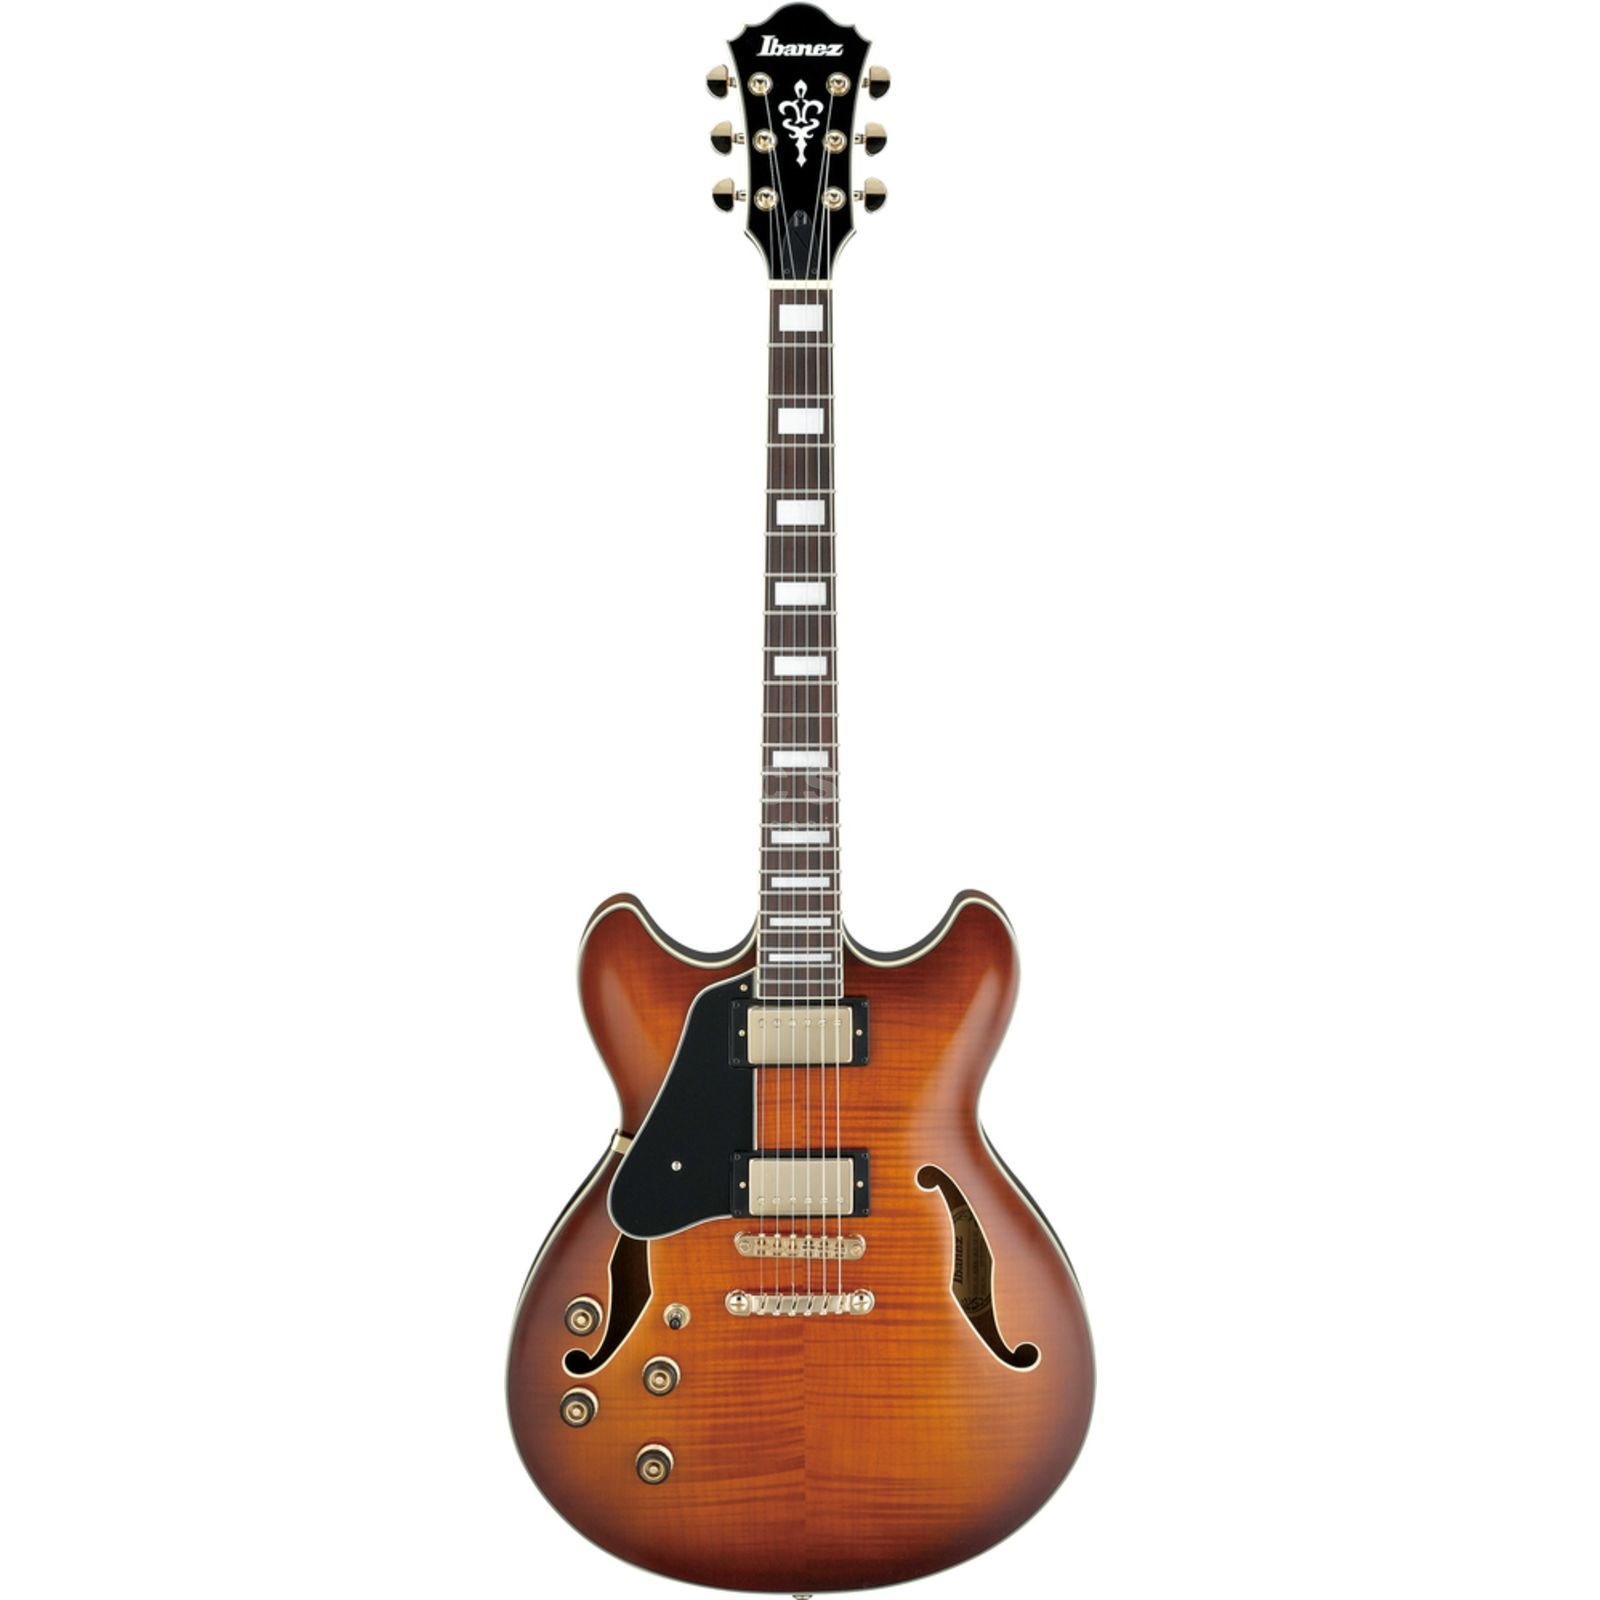 Ibanez Artcore AS93L-VLS Violin Sunburst Product Image